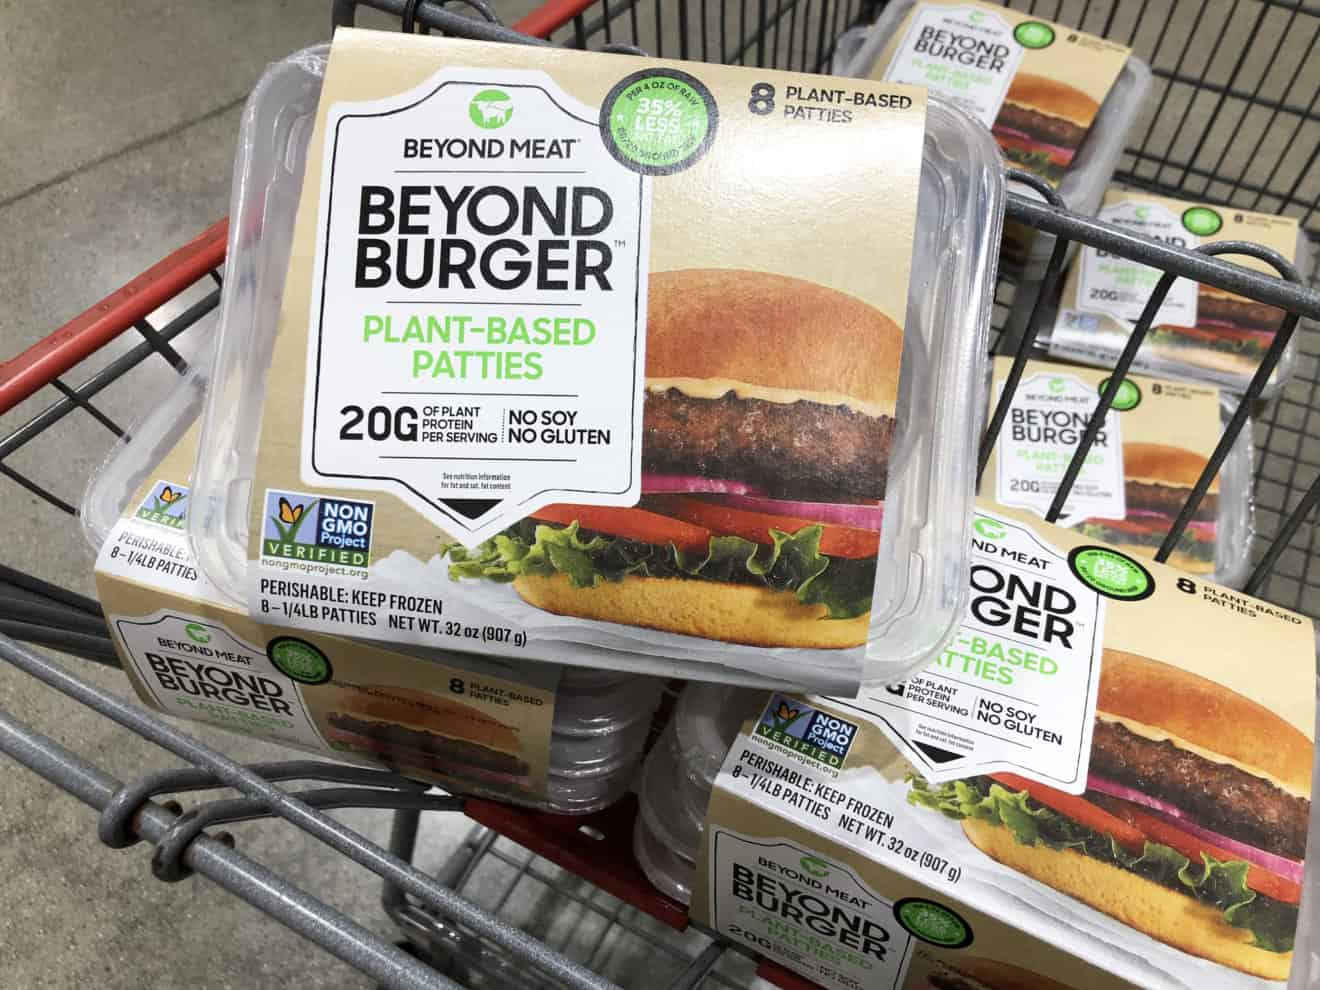 Affordable Plantbased for the Masses: Beyond Meat Expands into BJ's Wholesale and Sam's Club